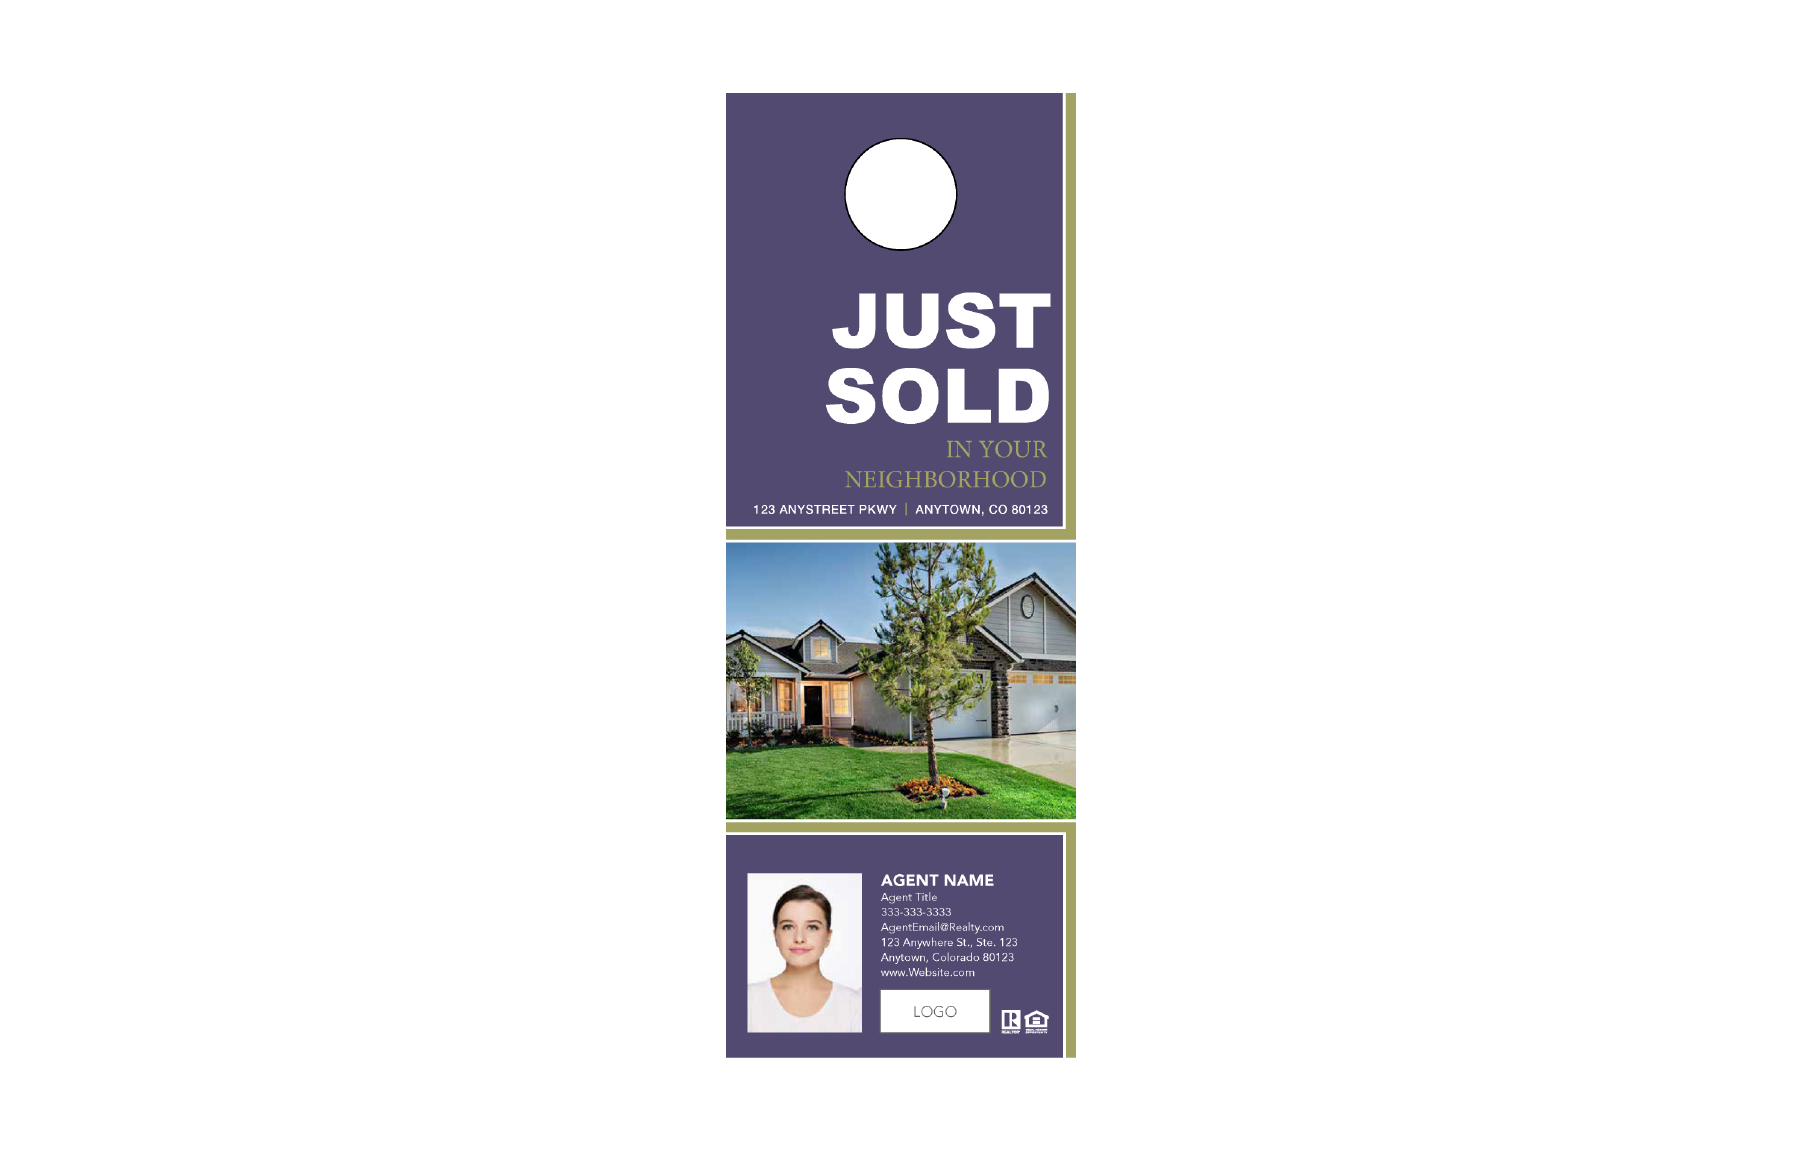 Plumb Marketing Doorhanger 9 One Sided Purple - Just Sold - 1712